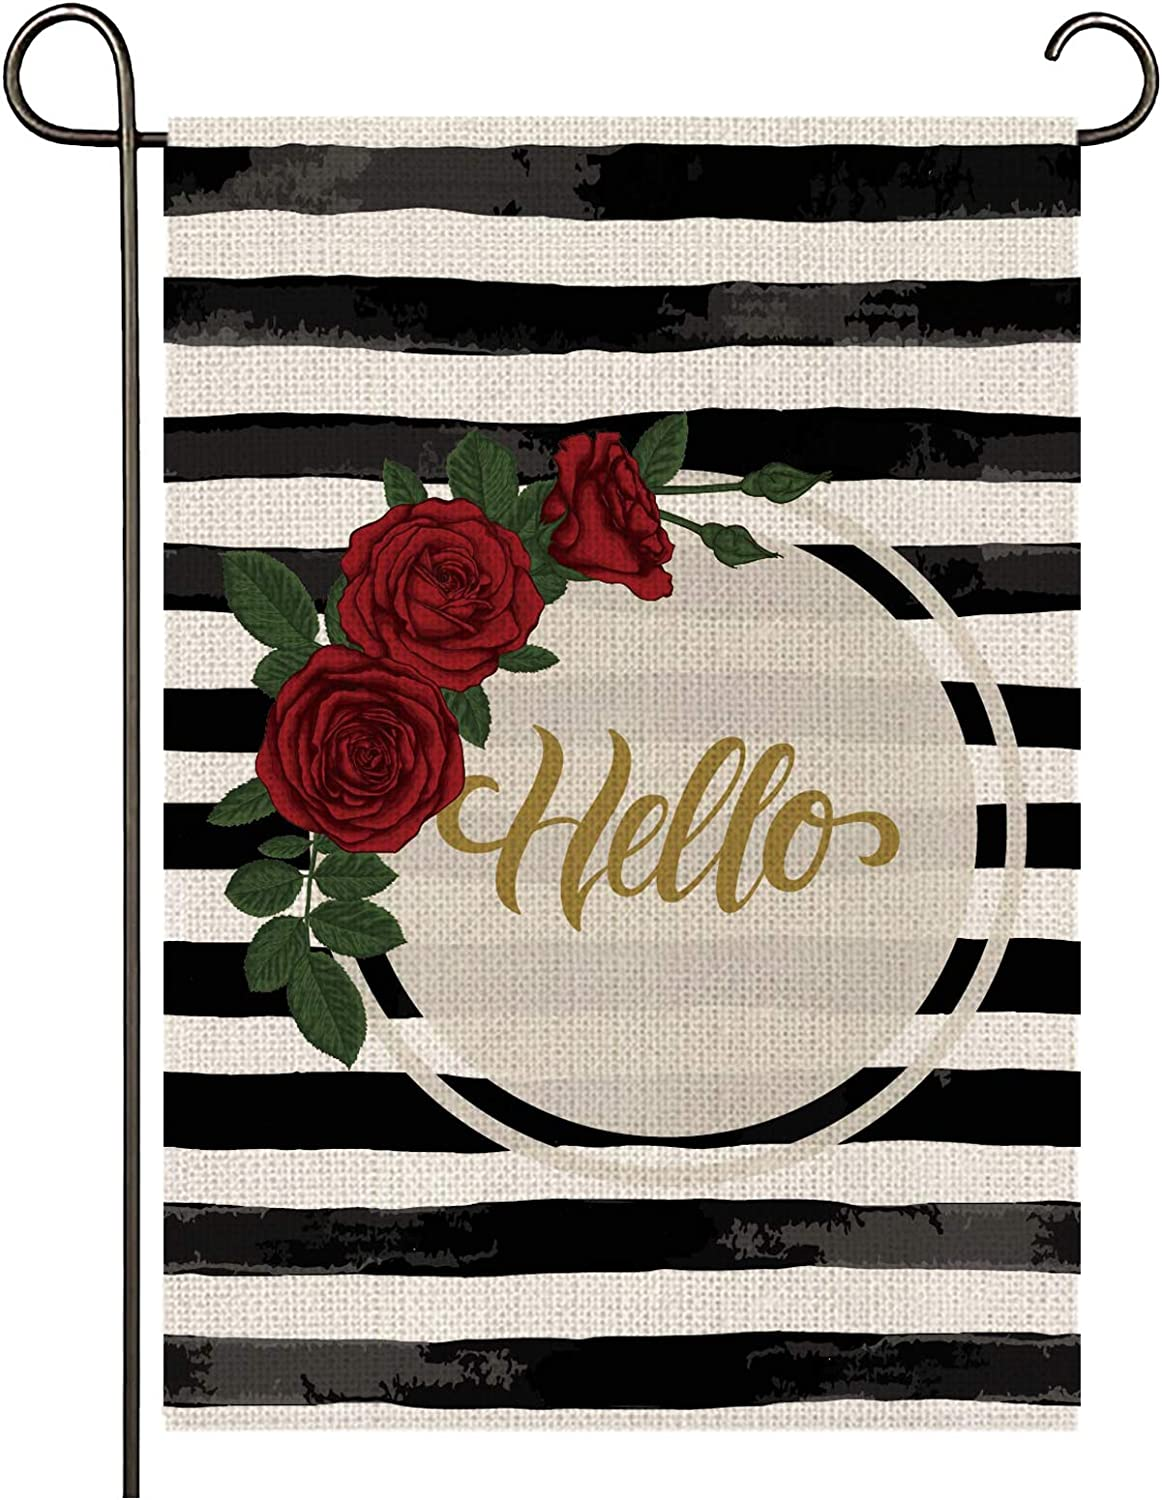 onetoze Roses Garden Flag Vertical Double Sided, 12.5X18inches Welcome Garden Flag, Premium Burlap Weather Proof for Yard Outdoor Decoration